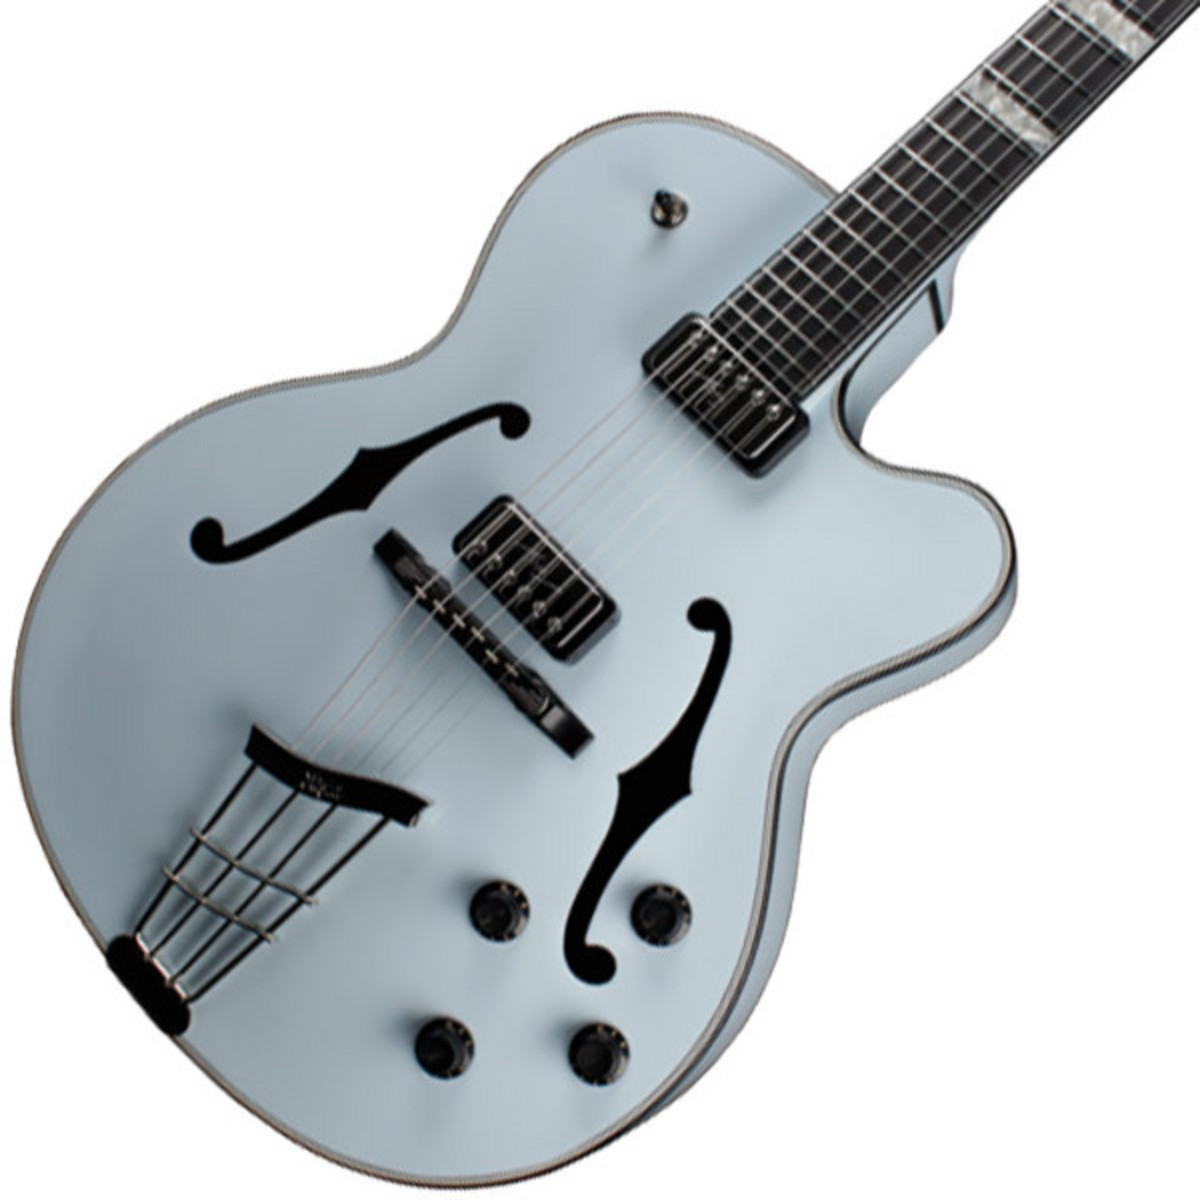 hofner gold label new president archtop electric guitar light blue at. Black Bedroom Furniture Sets. Home Design Ideas